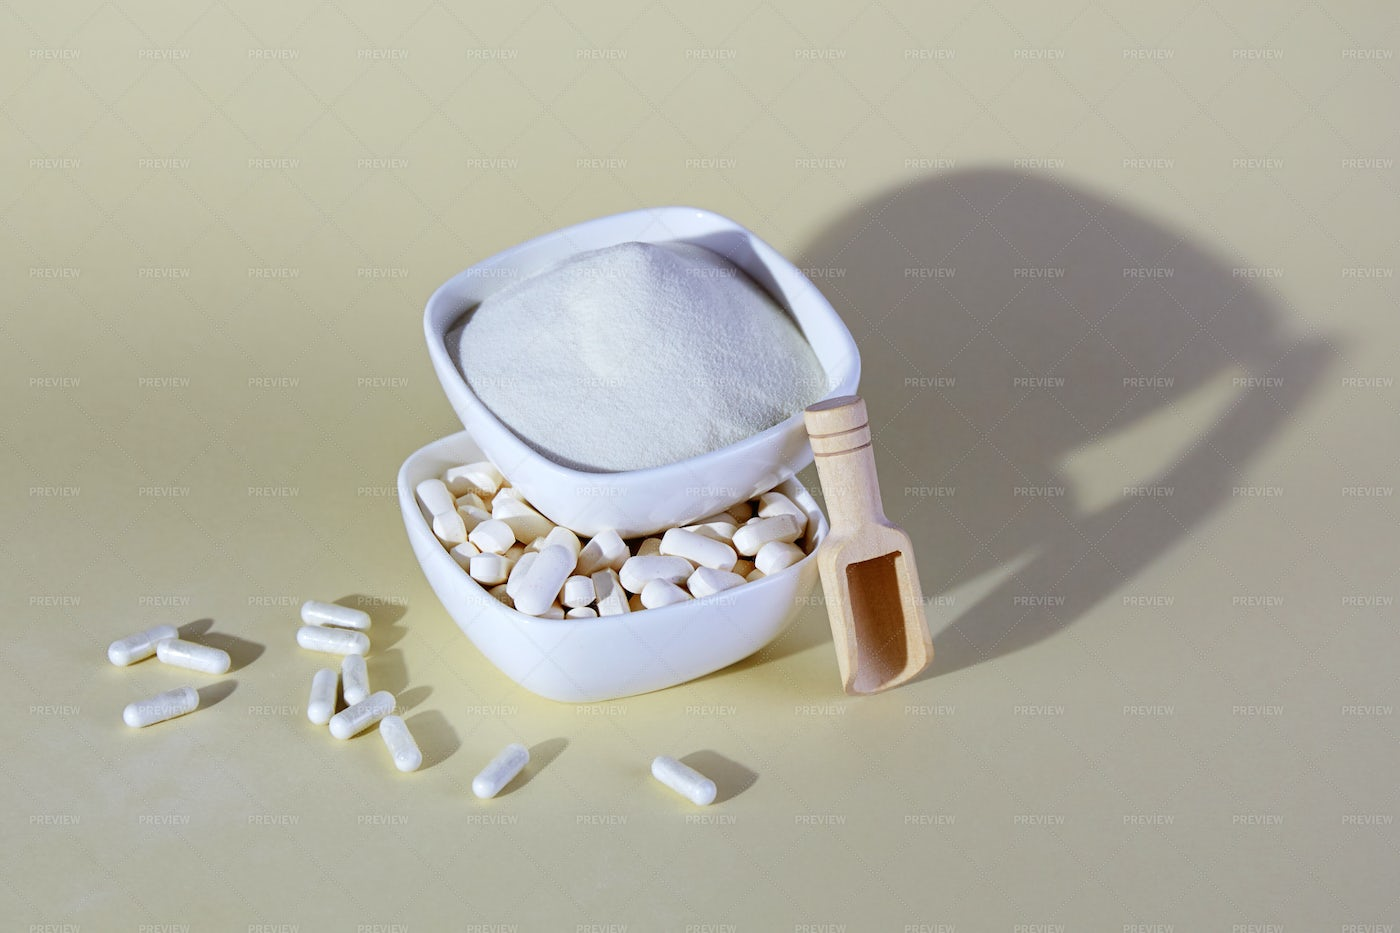 Collagen Powder And Capsules: Stock Photos